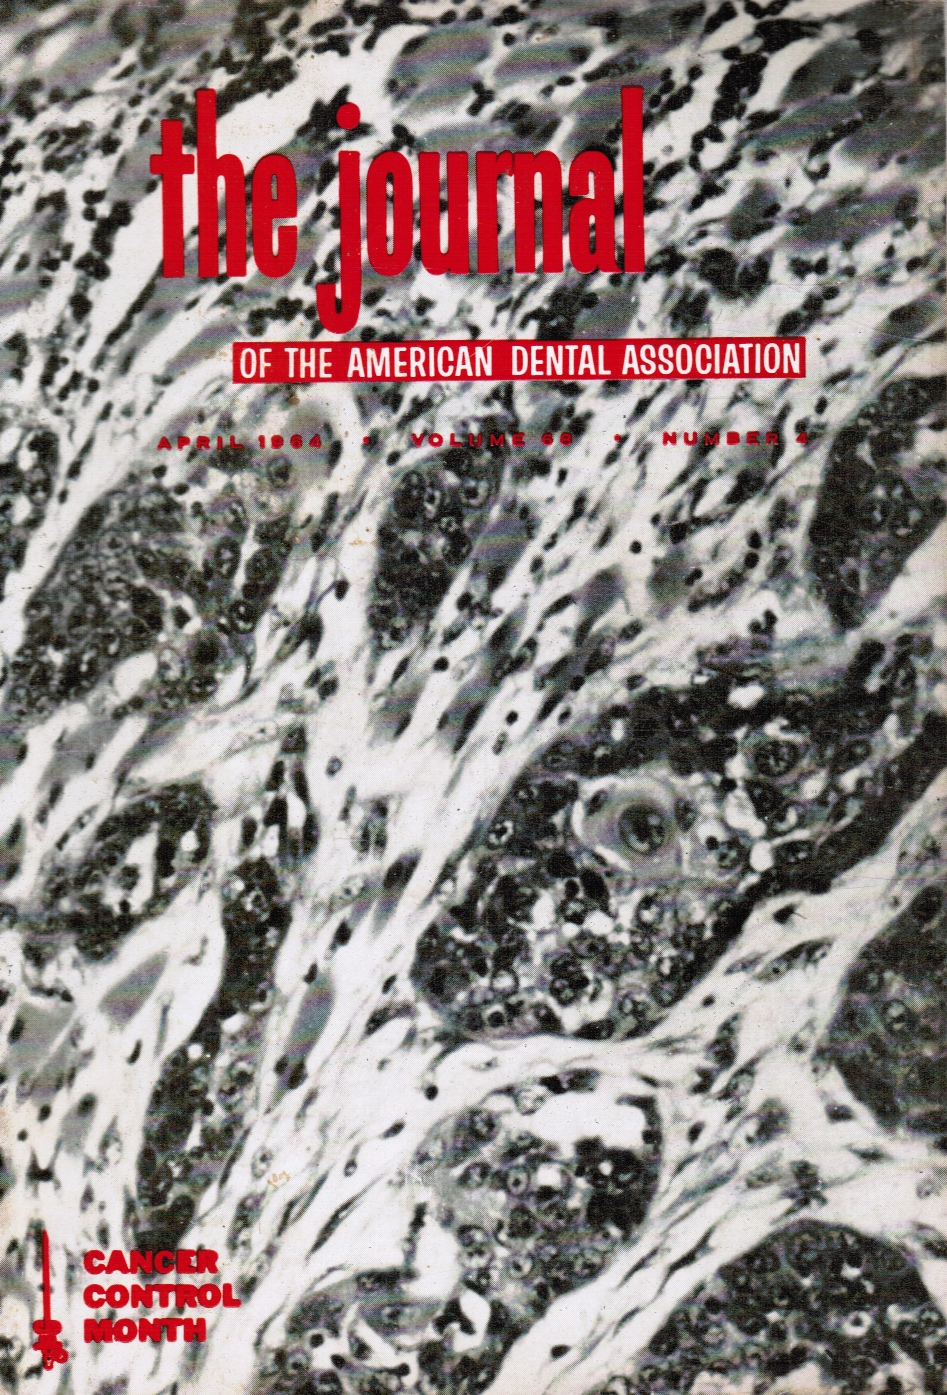 Image for The Journal of the American Dental Association: April 1964 Cancer Control Month (cover)